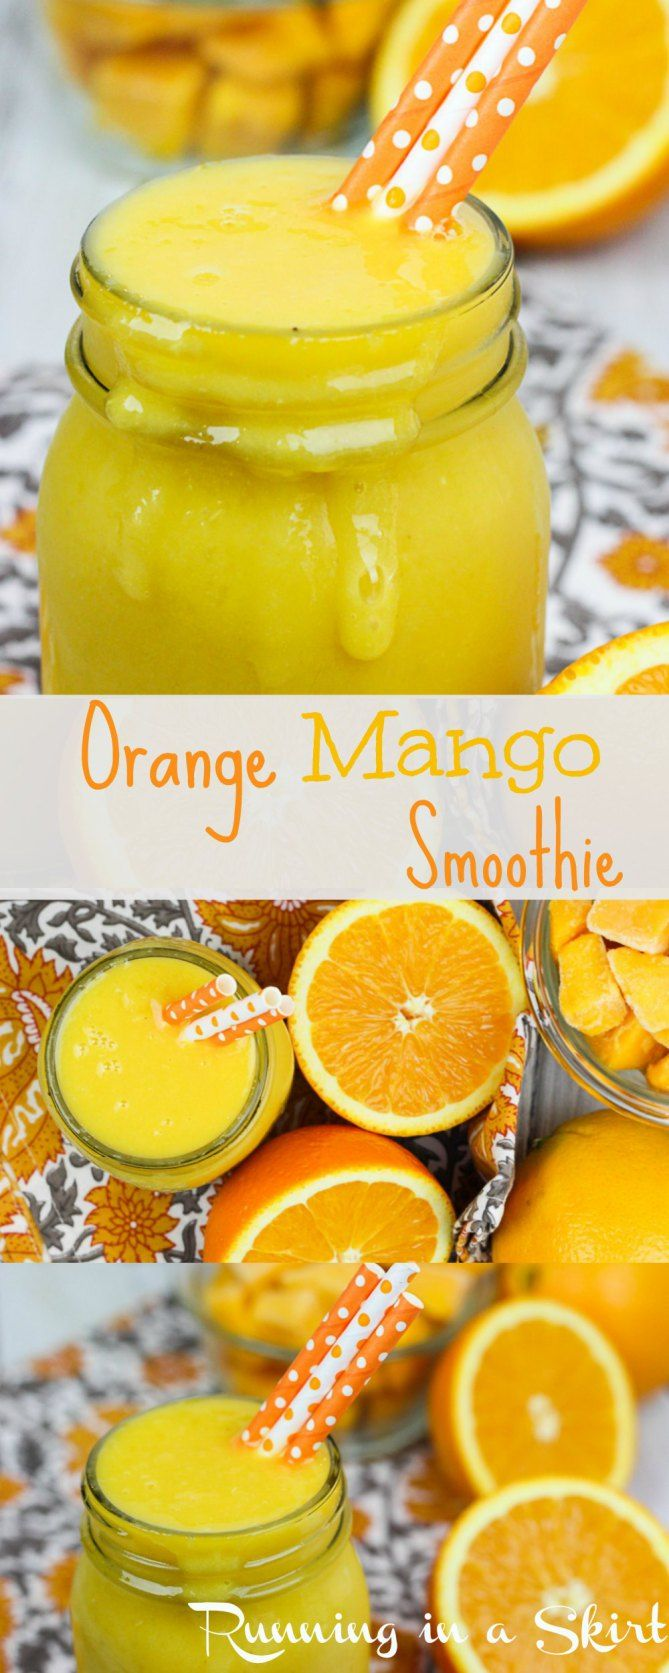 Sunshine in a cup!  Healthy Orange Mango Smoothie Recipe.  Smooth vegan smoothie with fruit including banannas.  Only 4 ingredients!  | Running in a Skirt